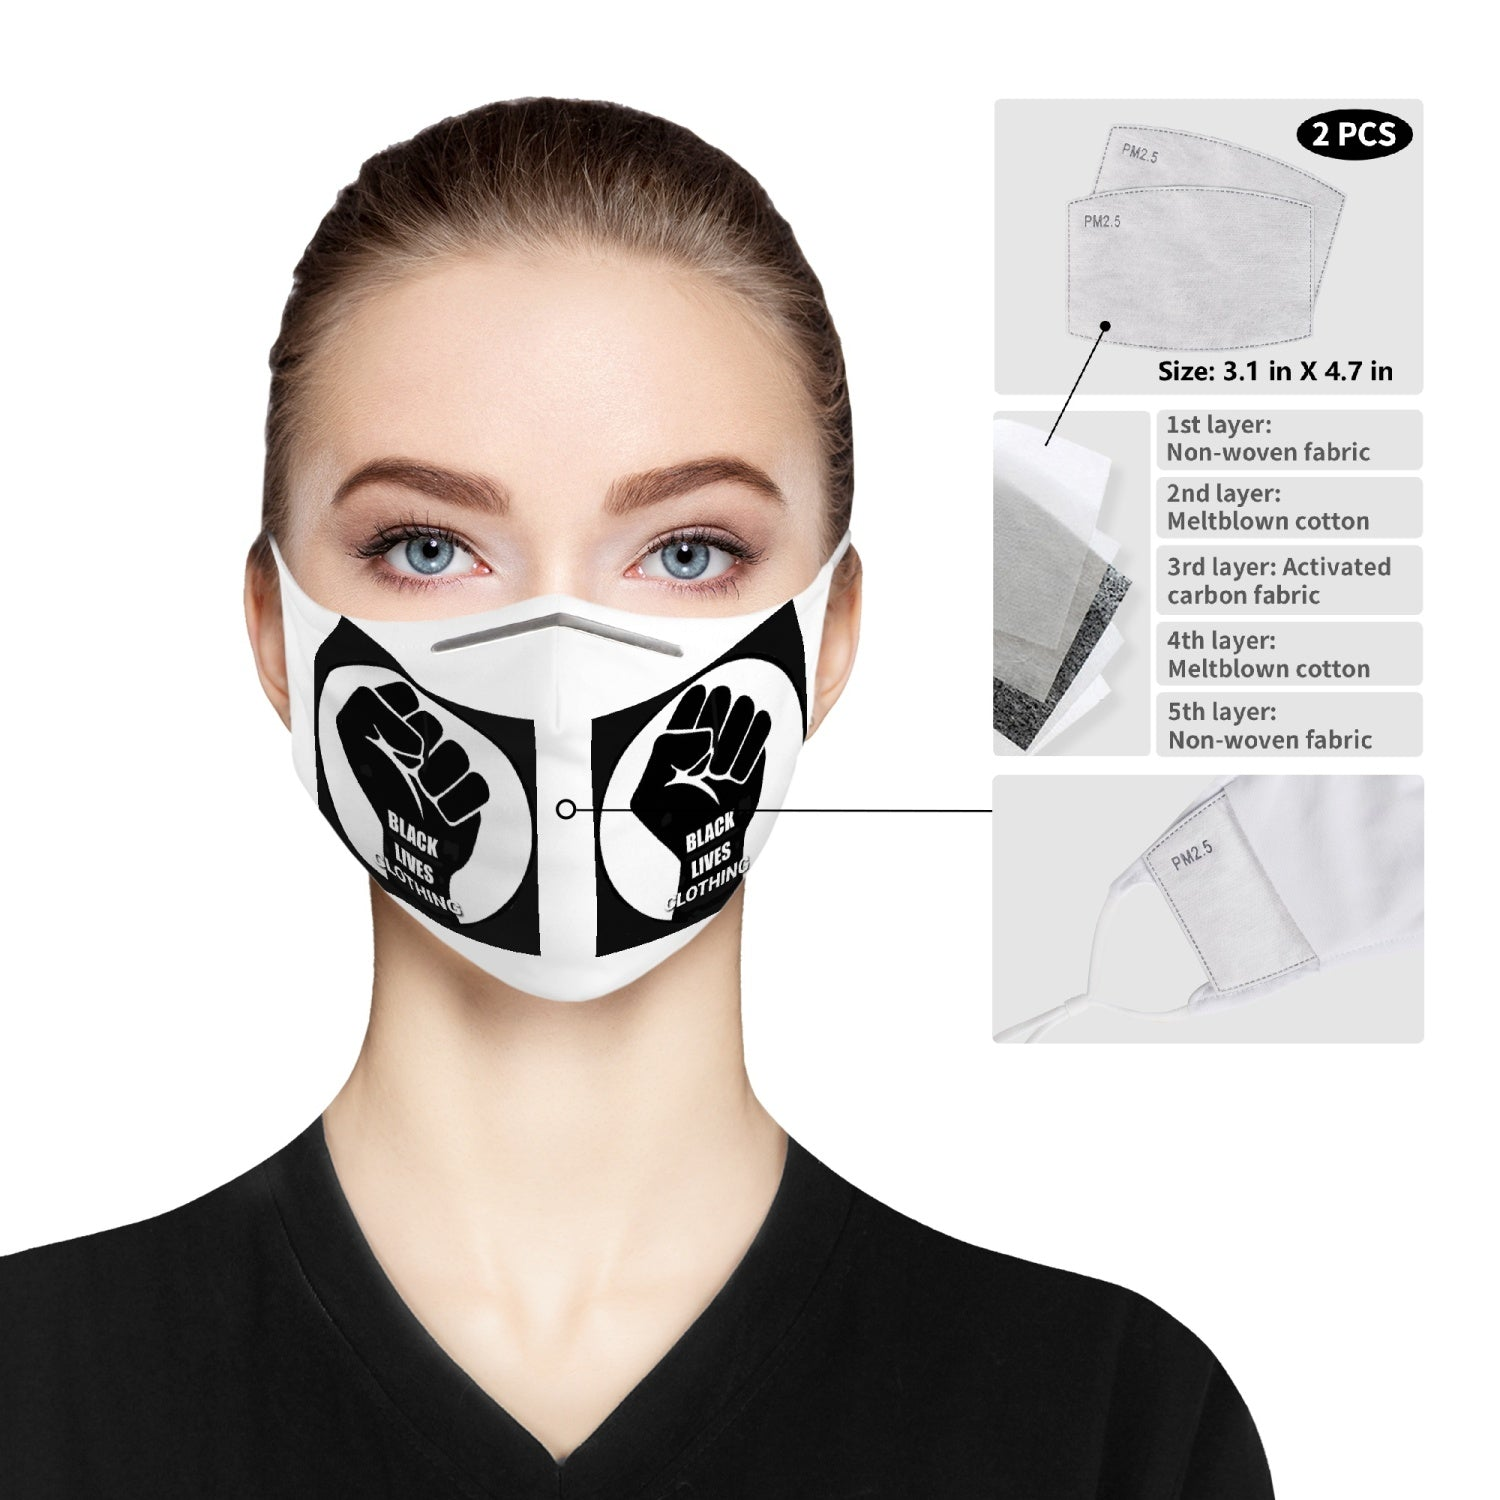 185. Cloth Face Mask For Adults - Black Lives Clothing